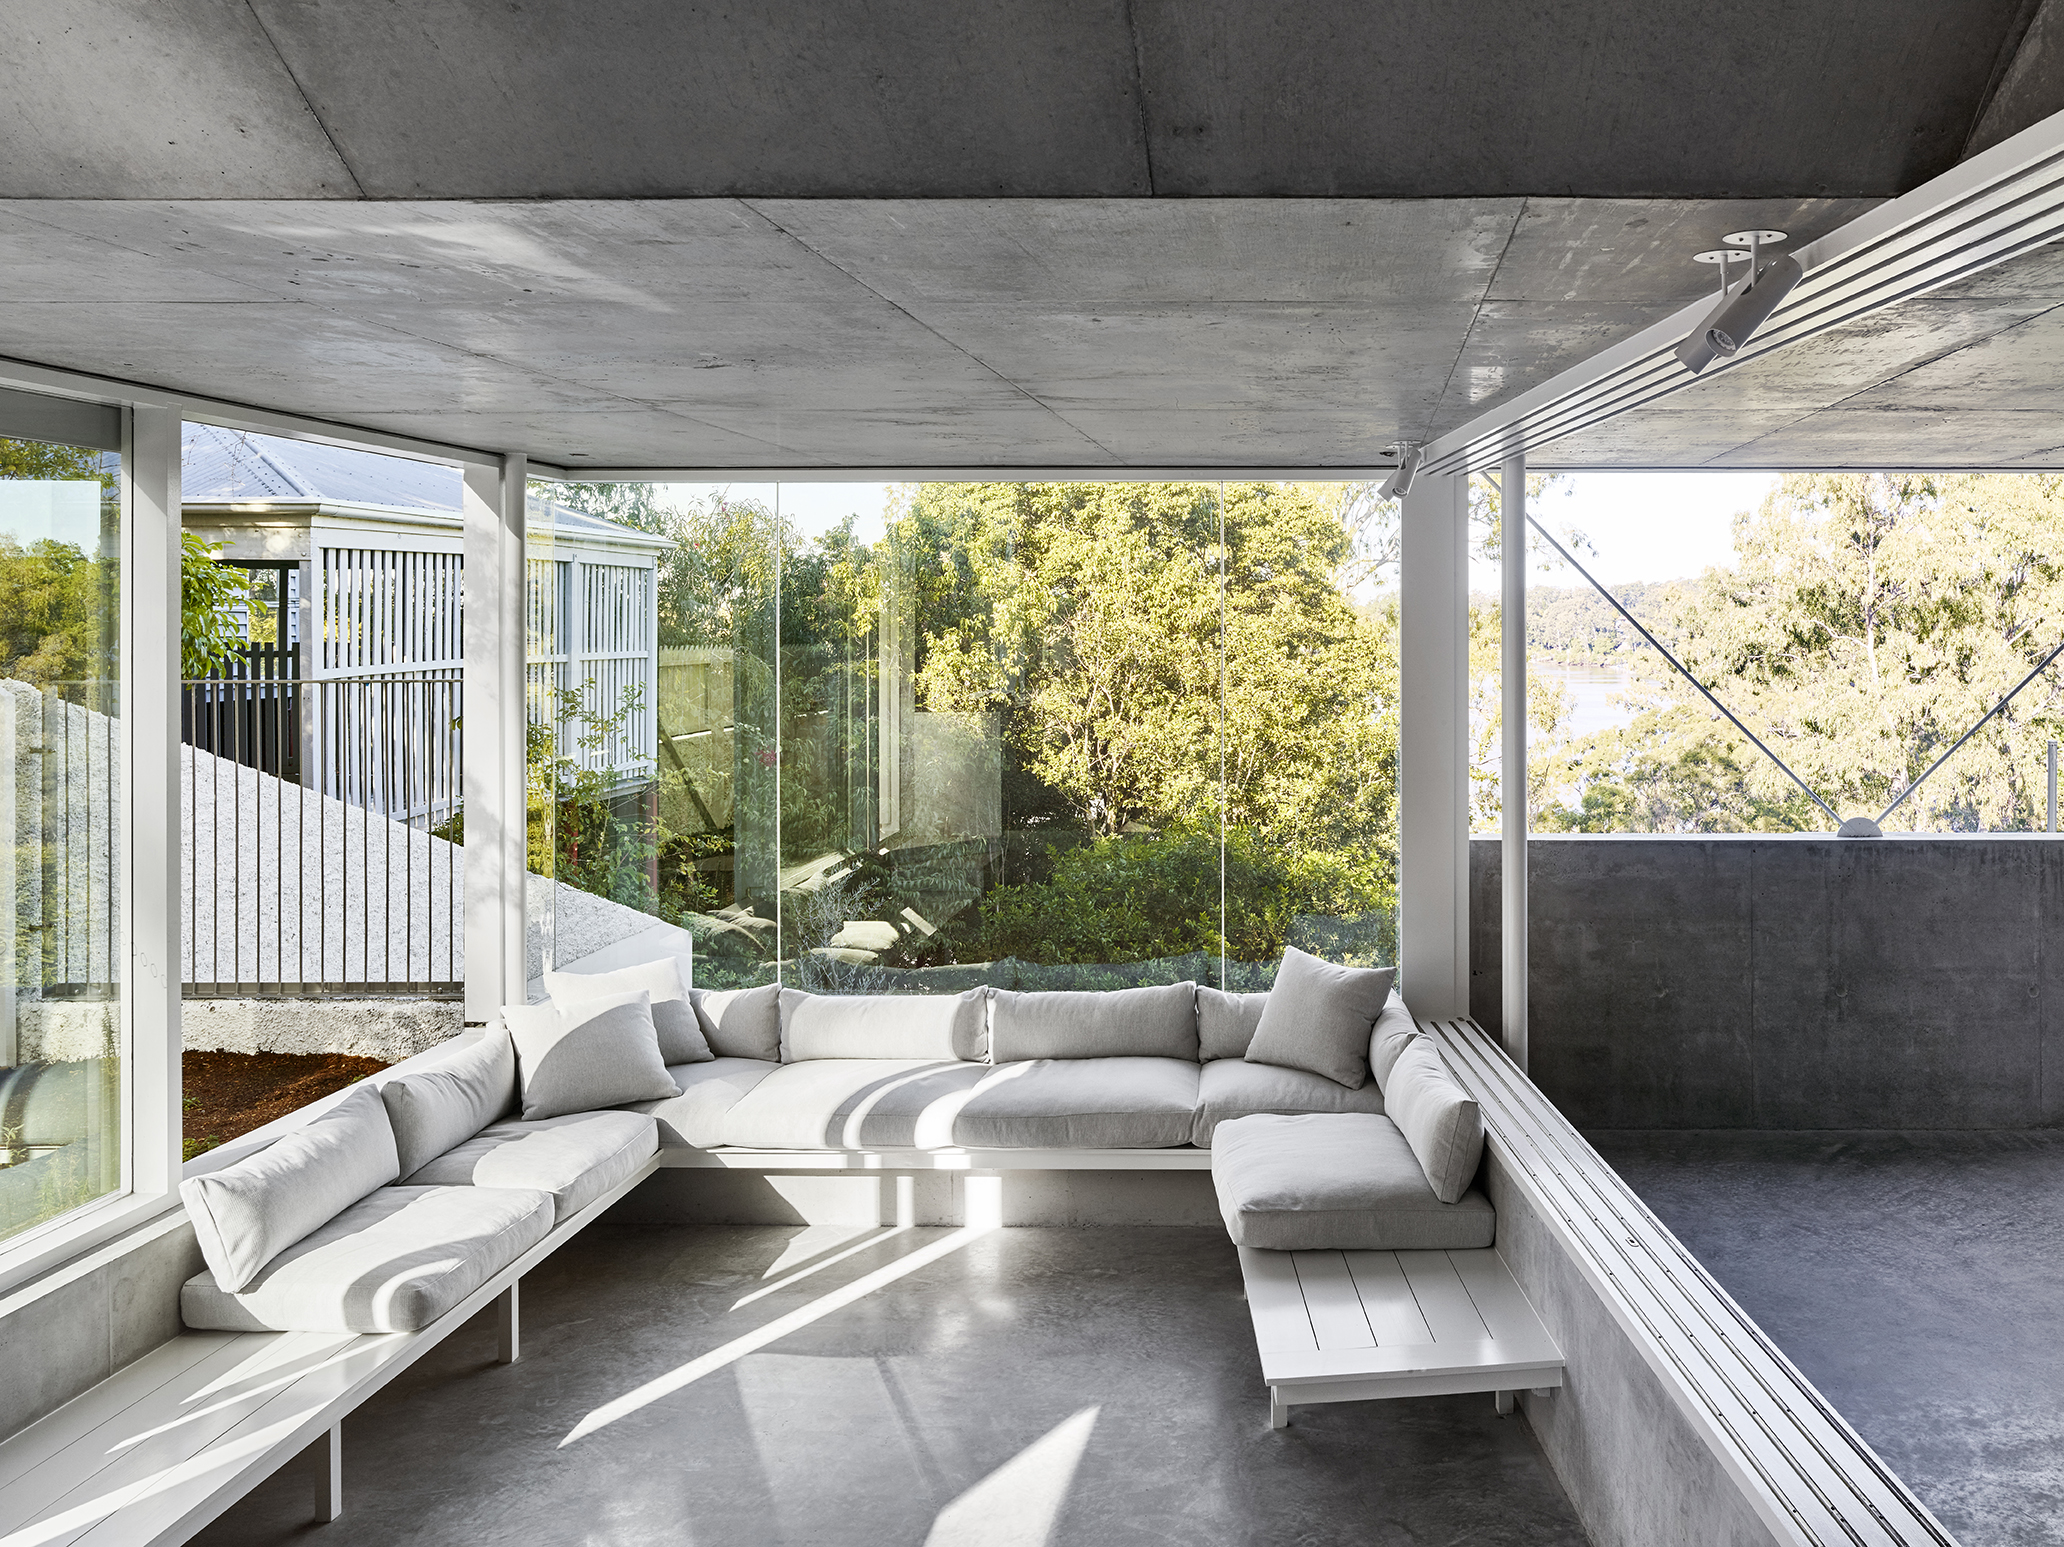 O+Lineburg___Goldieslie_Rd_House60650©To